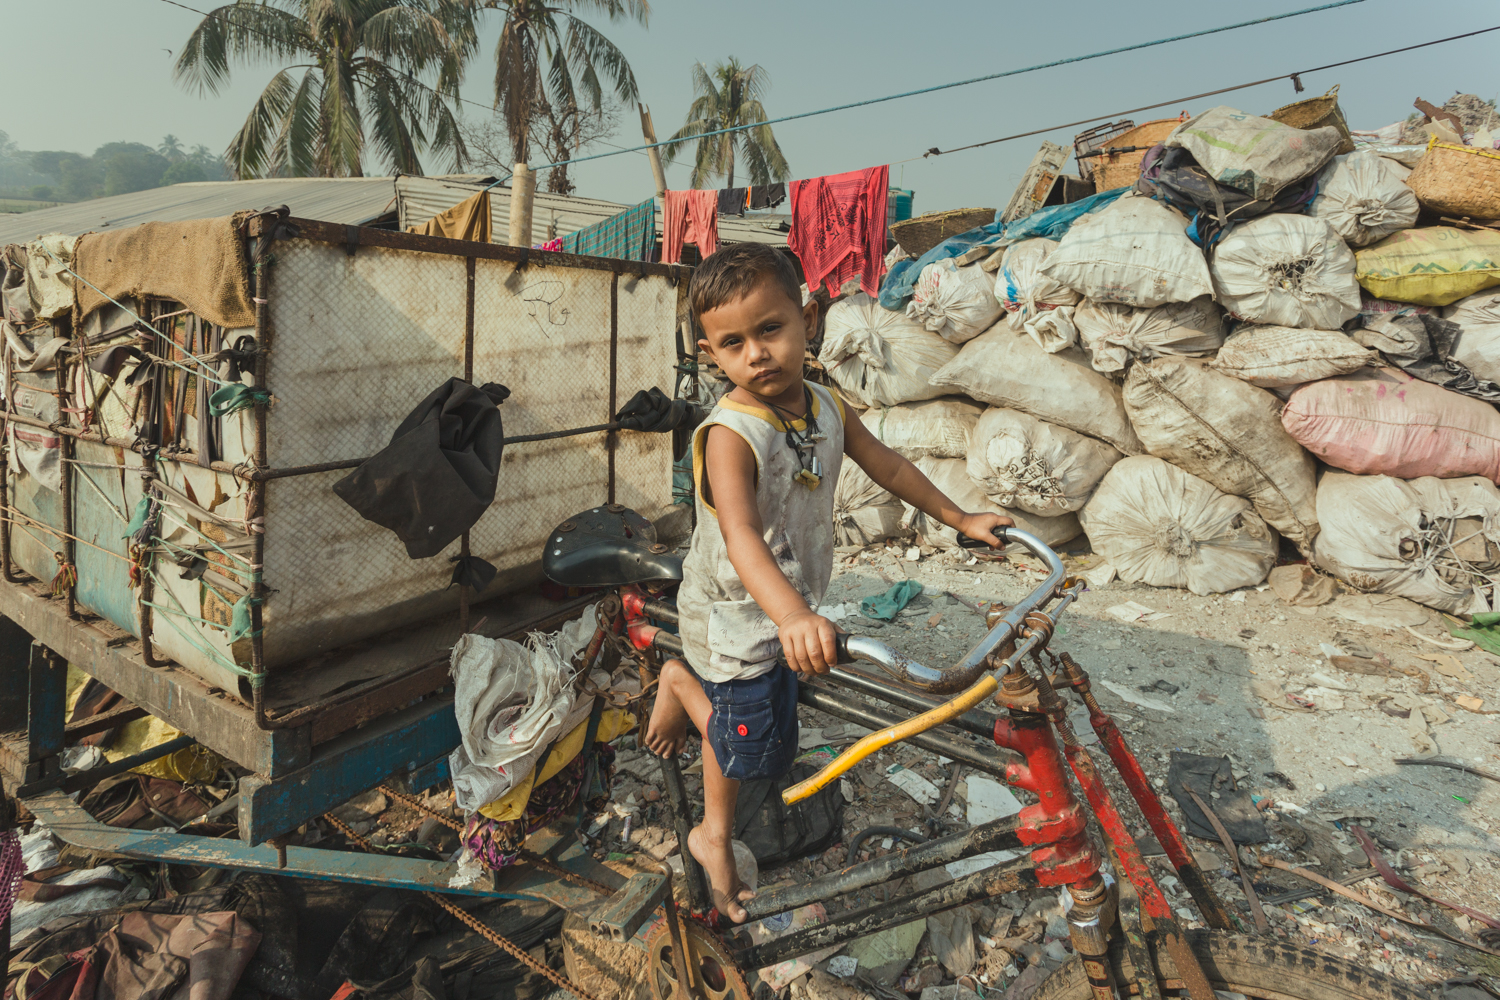 Little boy pretends to drive the rubbish collection cart in Chittagong, Bangladesh.